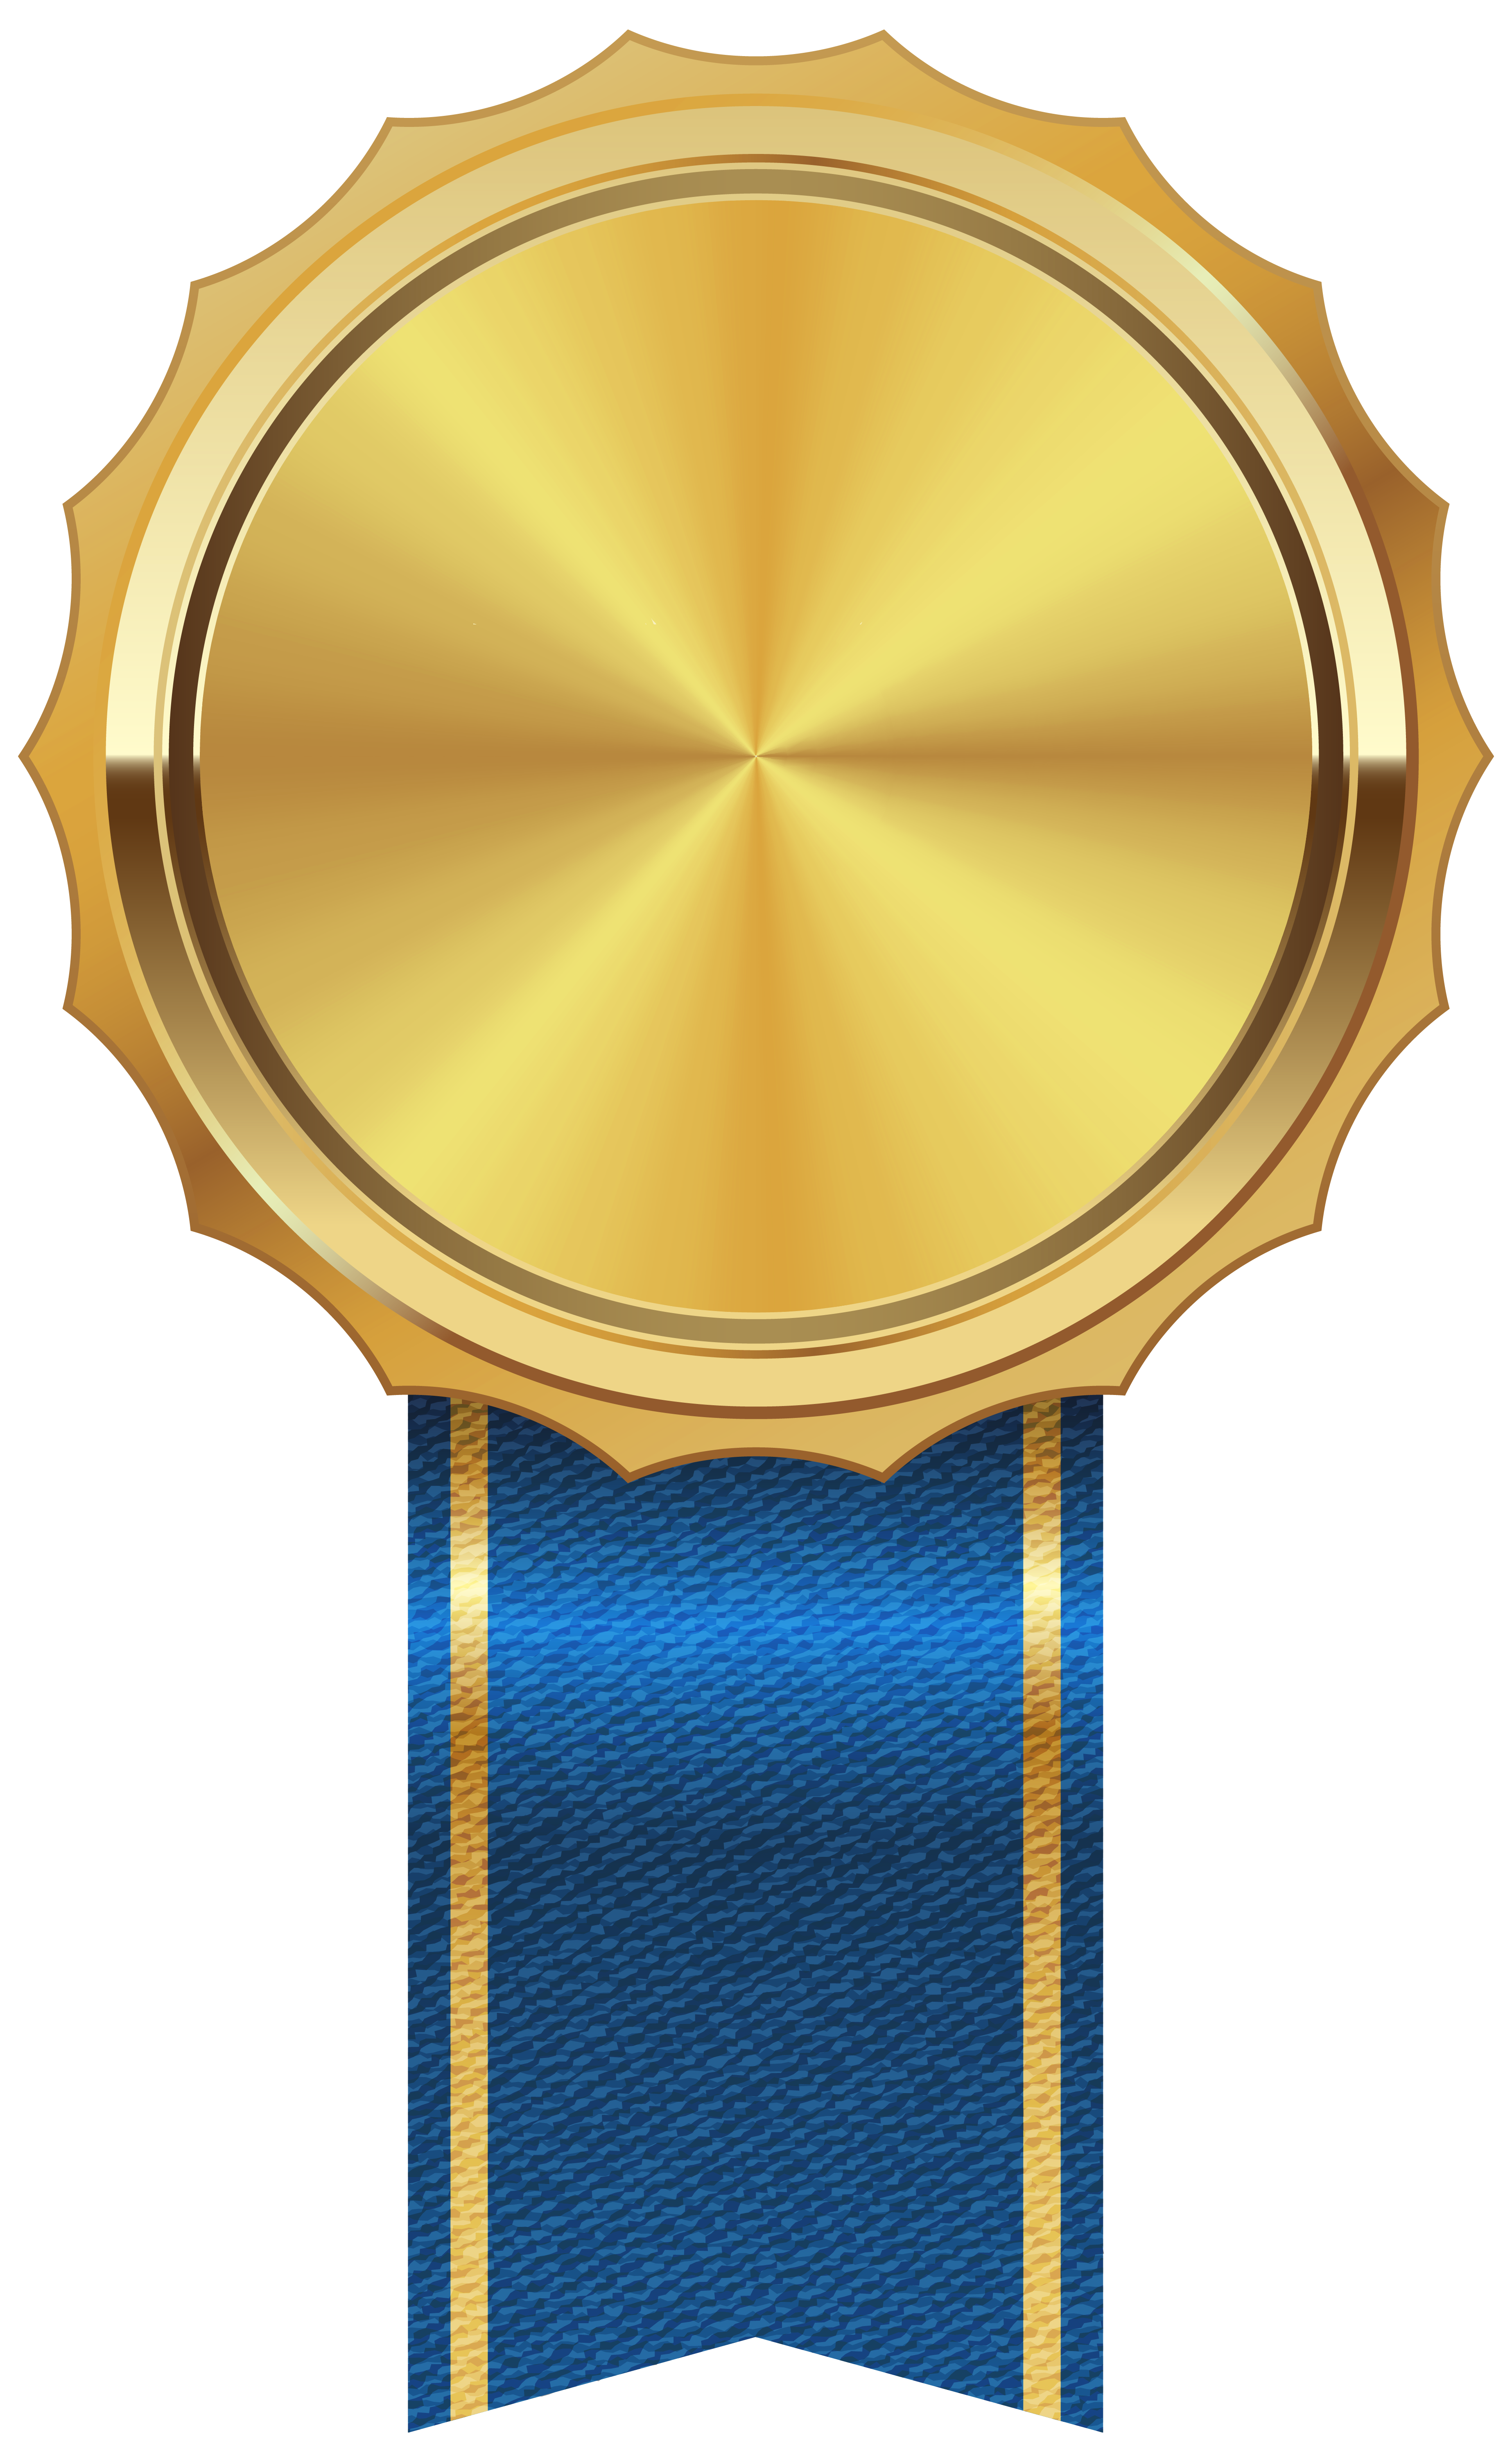 Gold Medal with Blue Ribbon PNG Clipart Image | Gallery ...